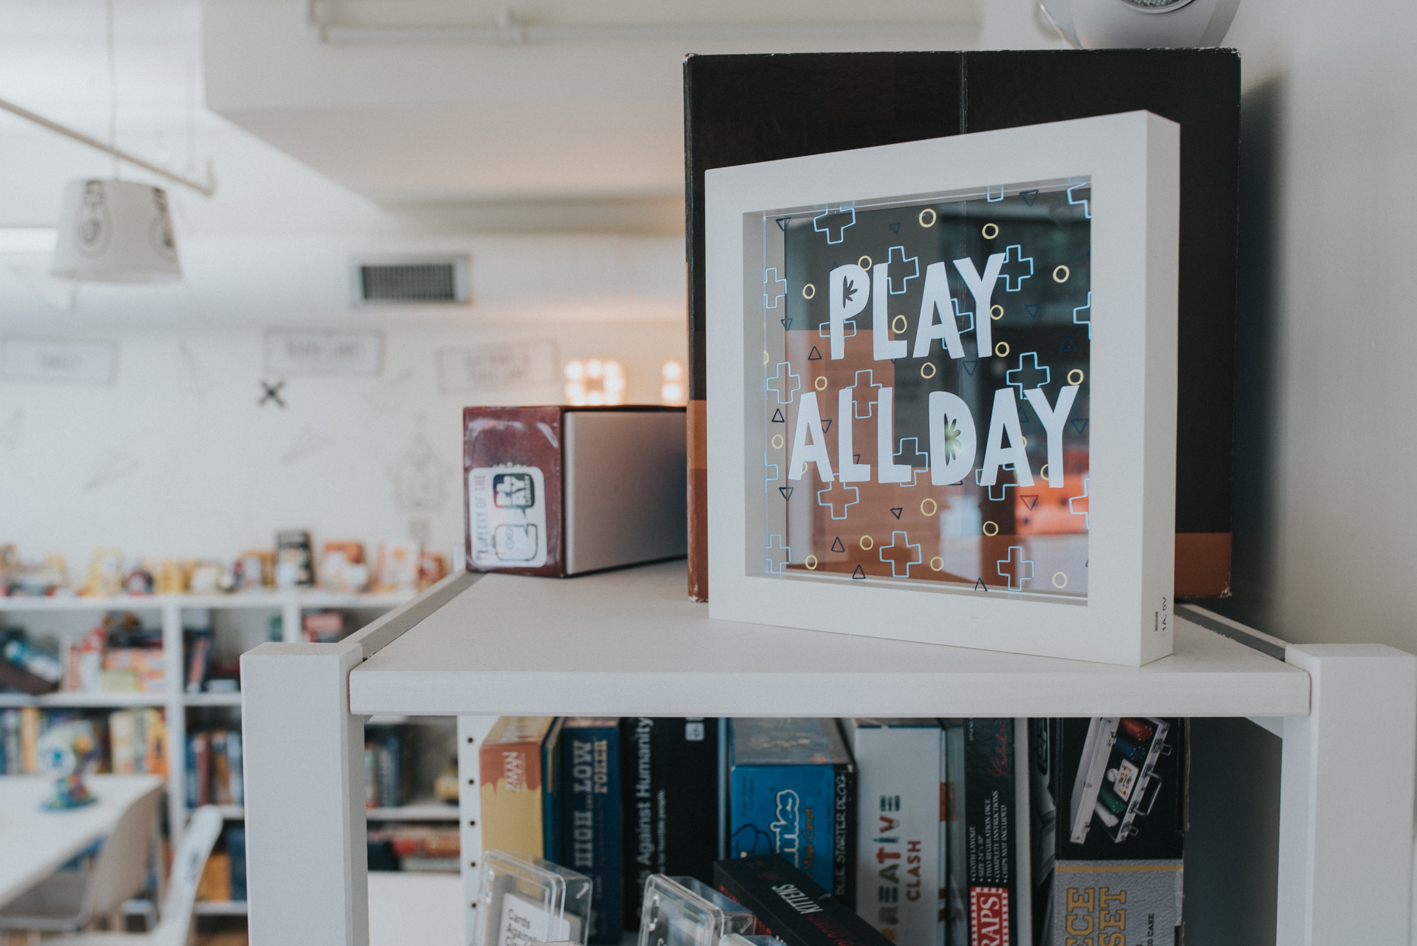 Play Library in OTR has a wide assortment of entertainment for both adults and children alike. It features hundreds of games and toys that you can rent out just as you would books at a library. As a bonus, Cincinnati's first toy history museum is located on site. ADDRESS: 1517 Elm St (45202) / Image: Brianna Long // Published 6.29.17